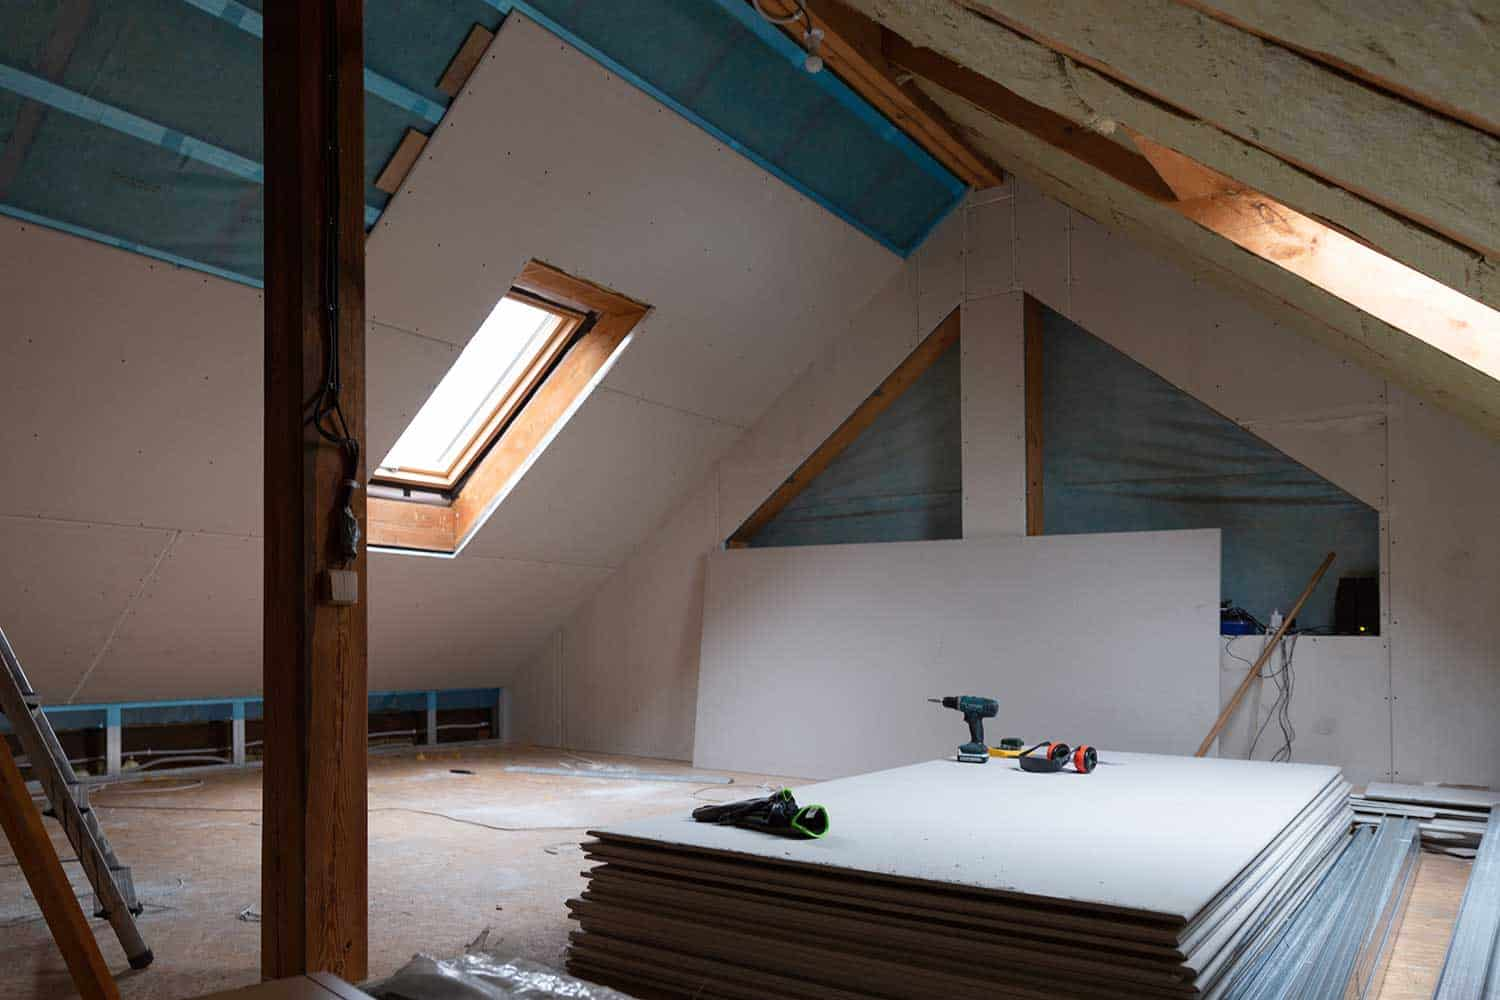 House attic insulation and renovation